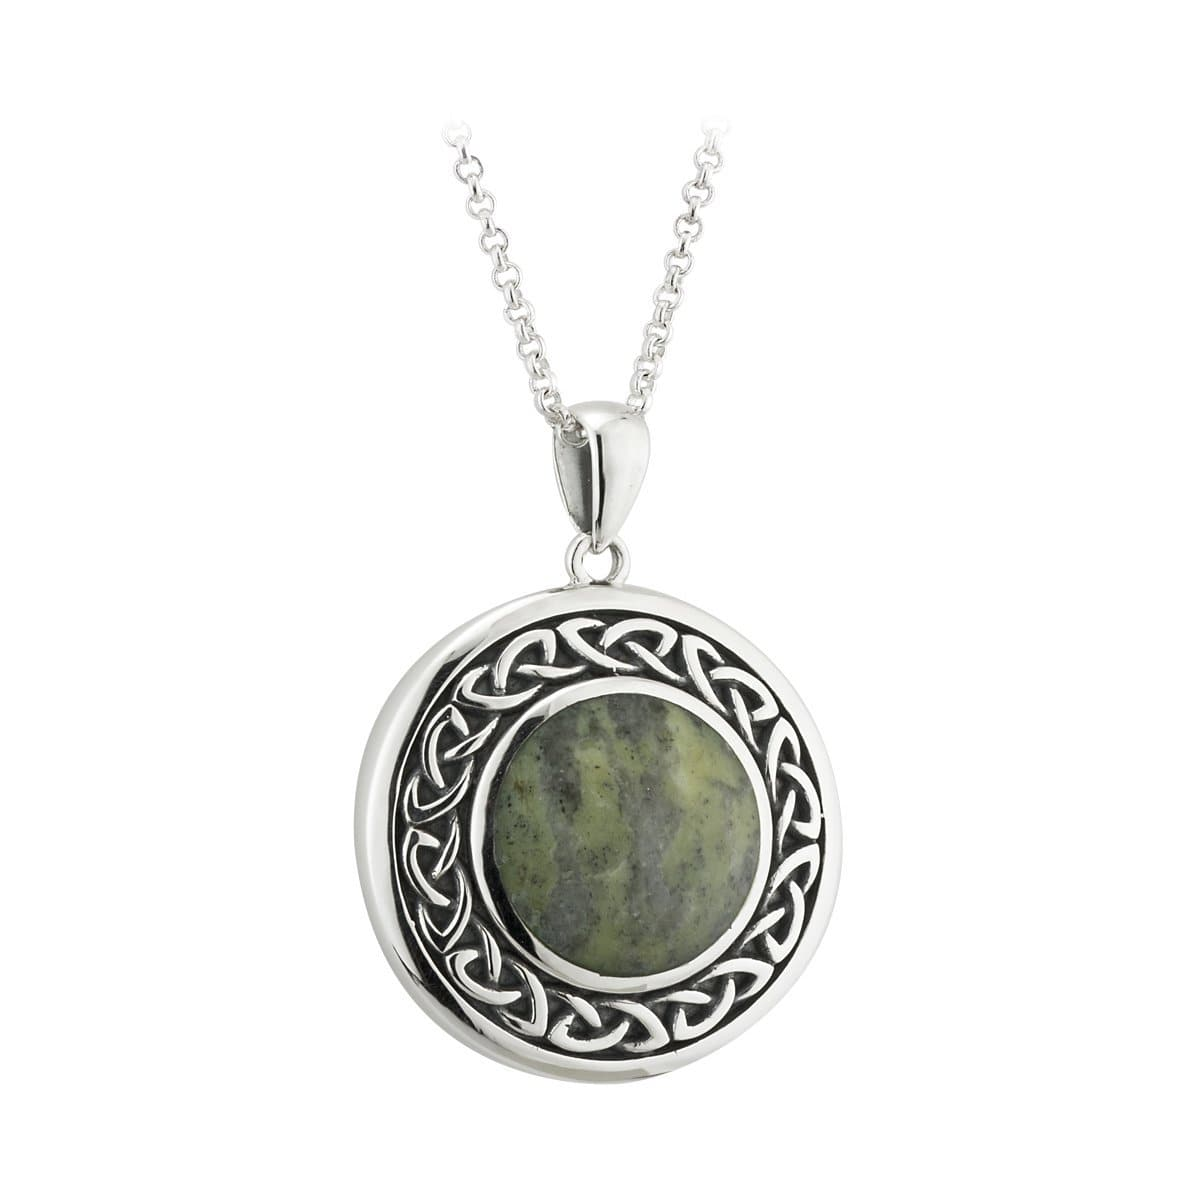 Connemara Marble & Sterling Silver Celtic Necklace Made in Ireland